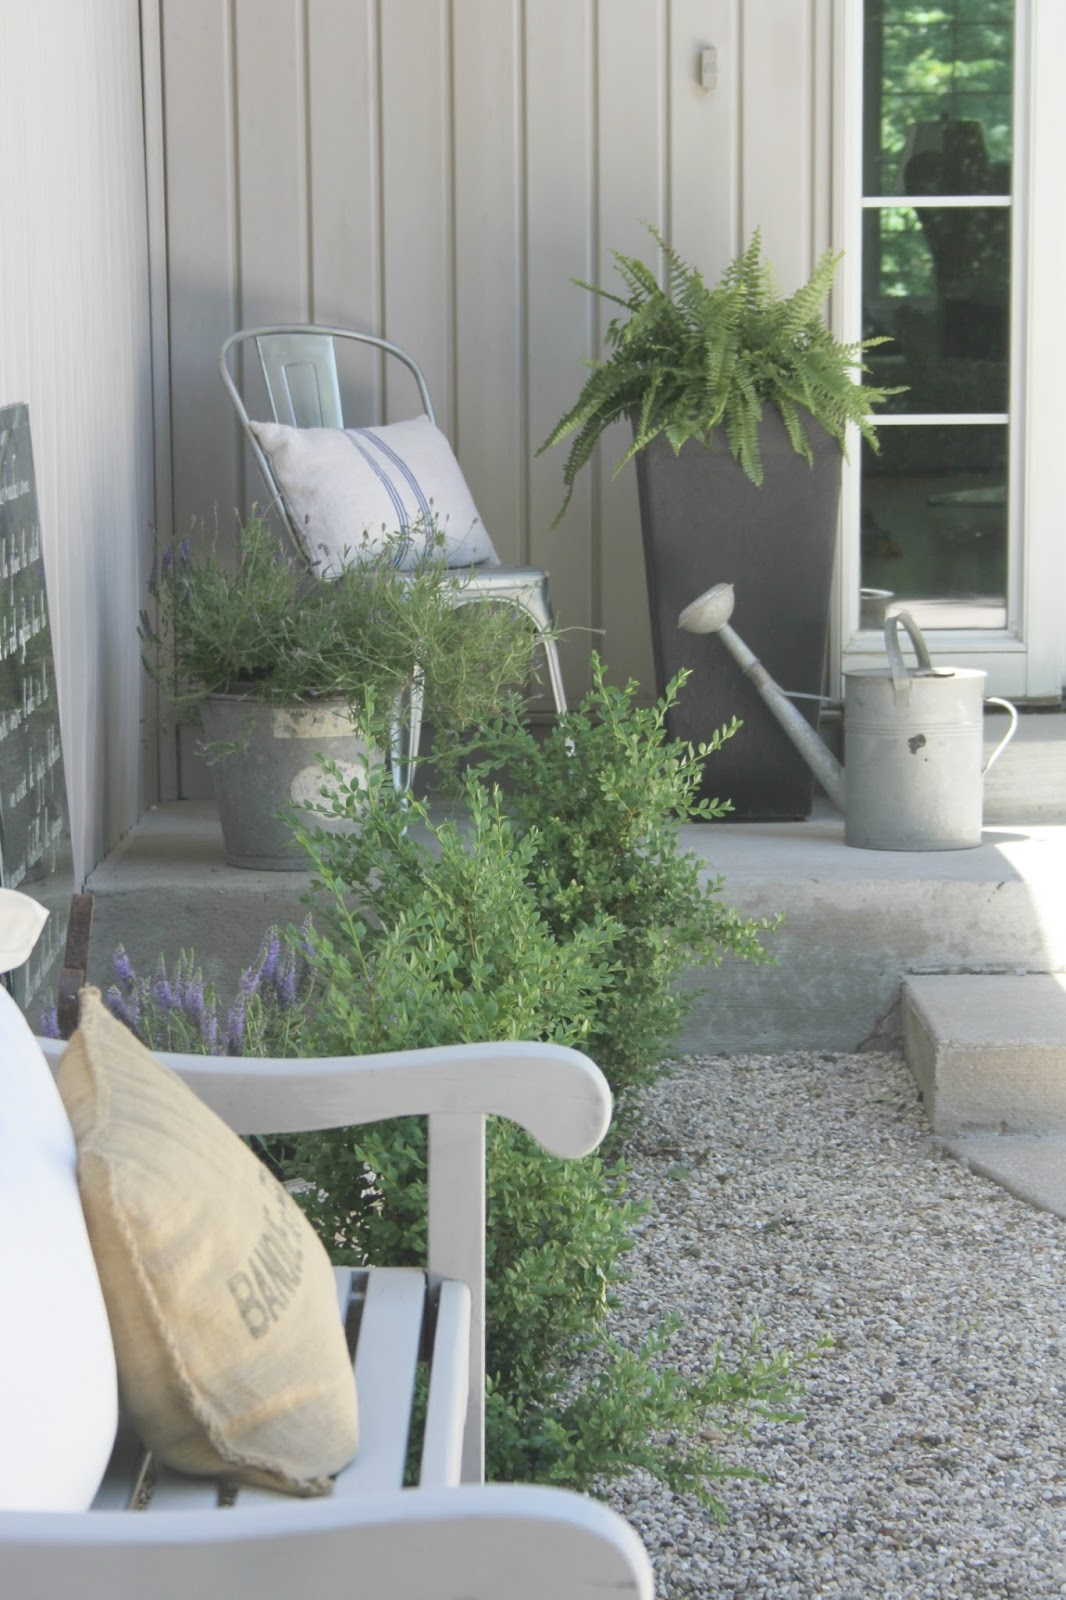 Pea gravel, boxwood, and bench with French farmhouse pillows in French country courtyard - Hello Lovely Studio.